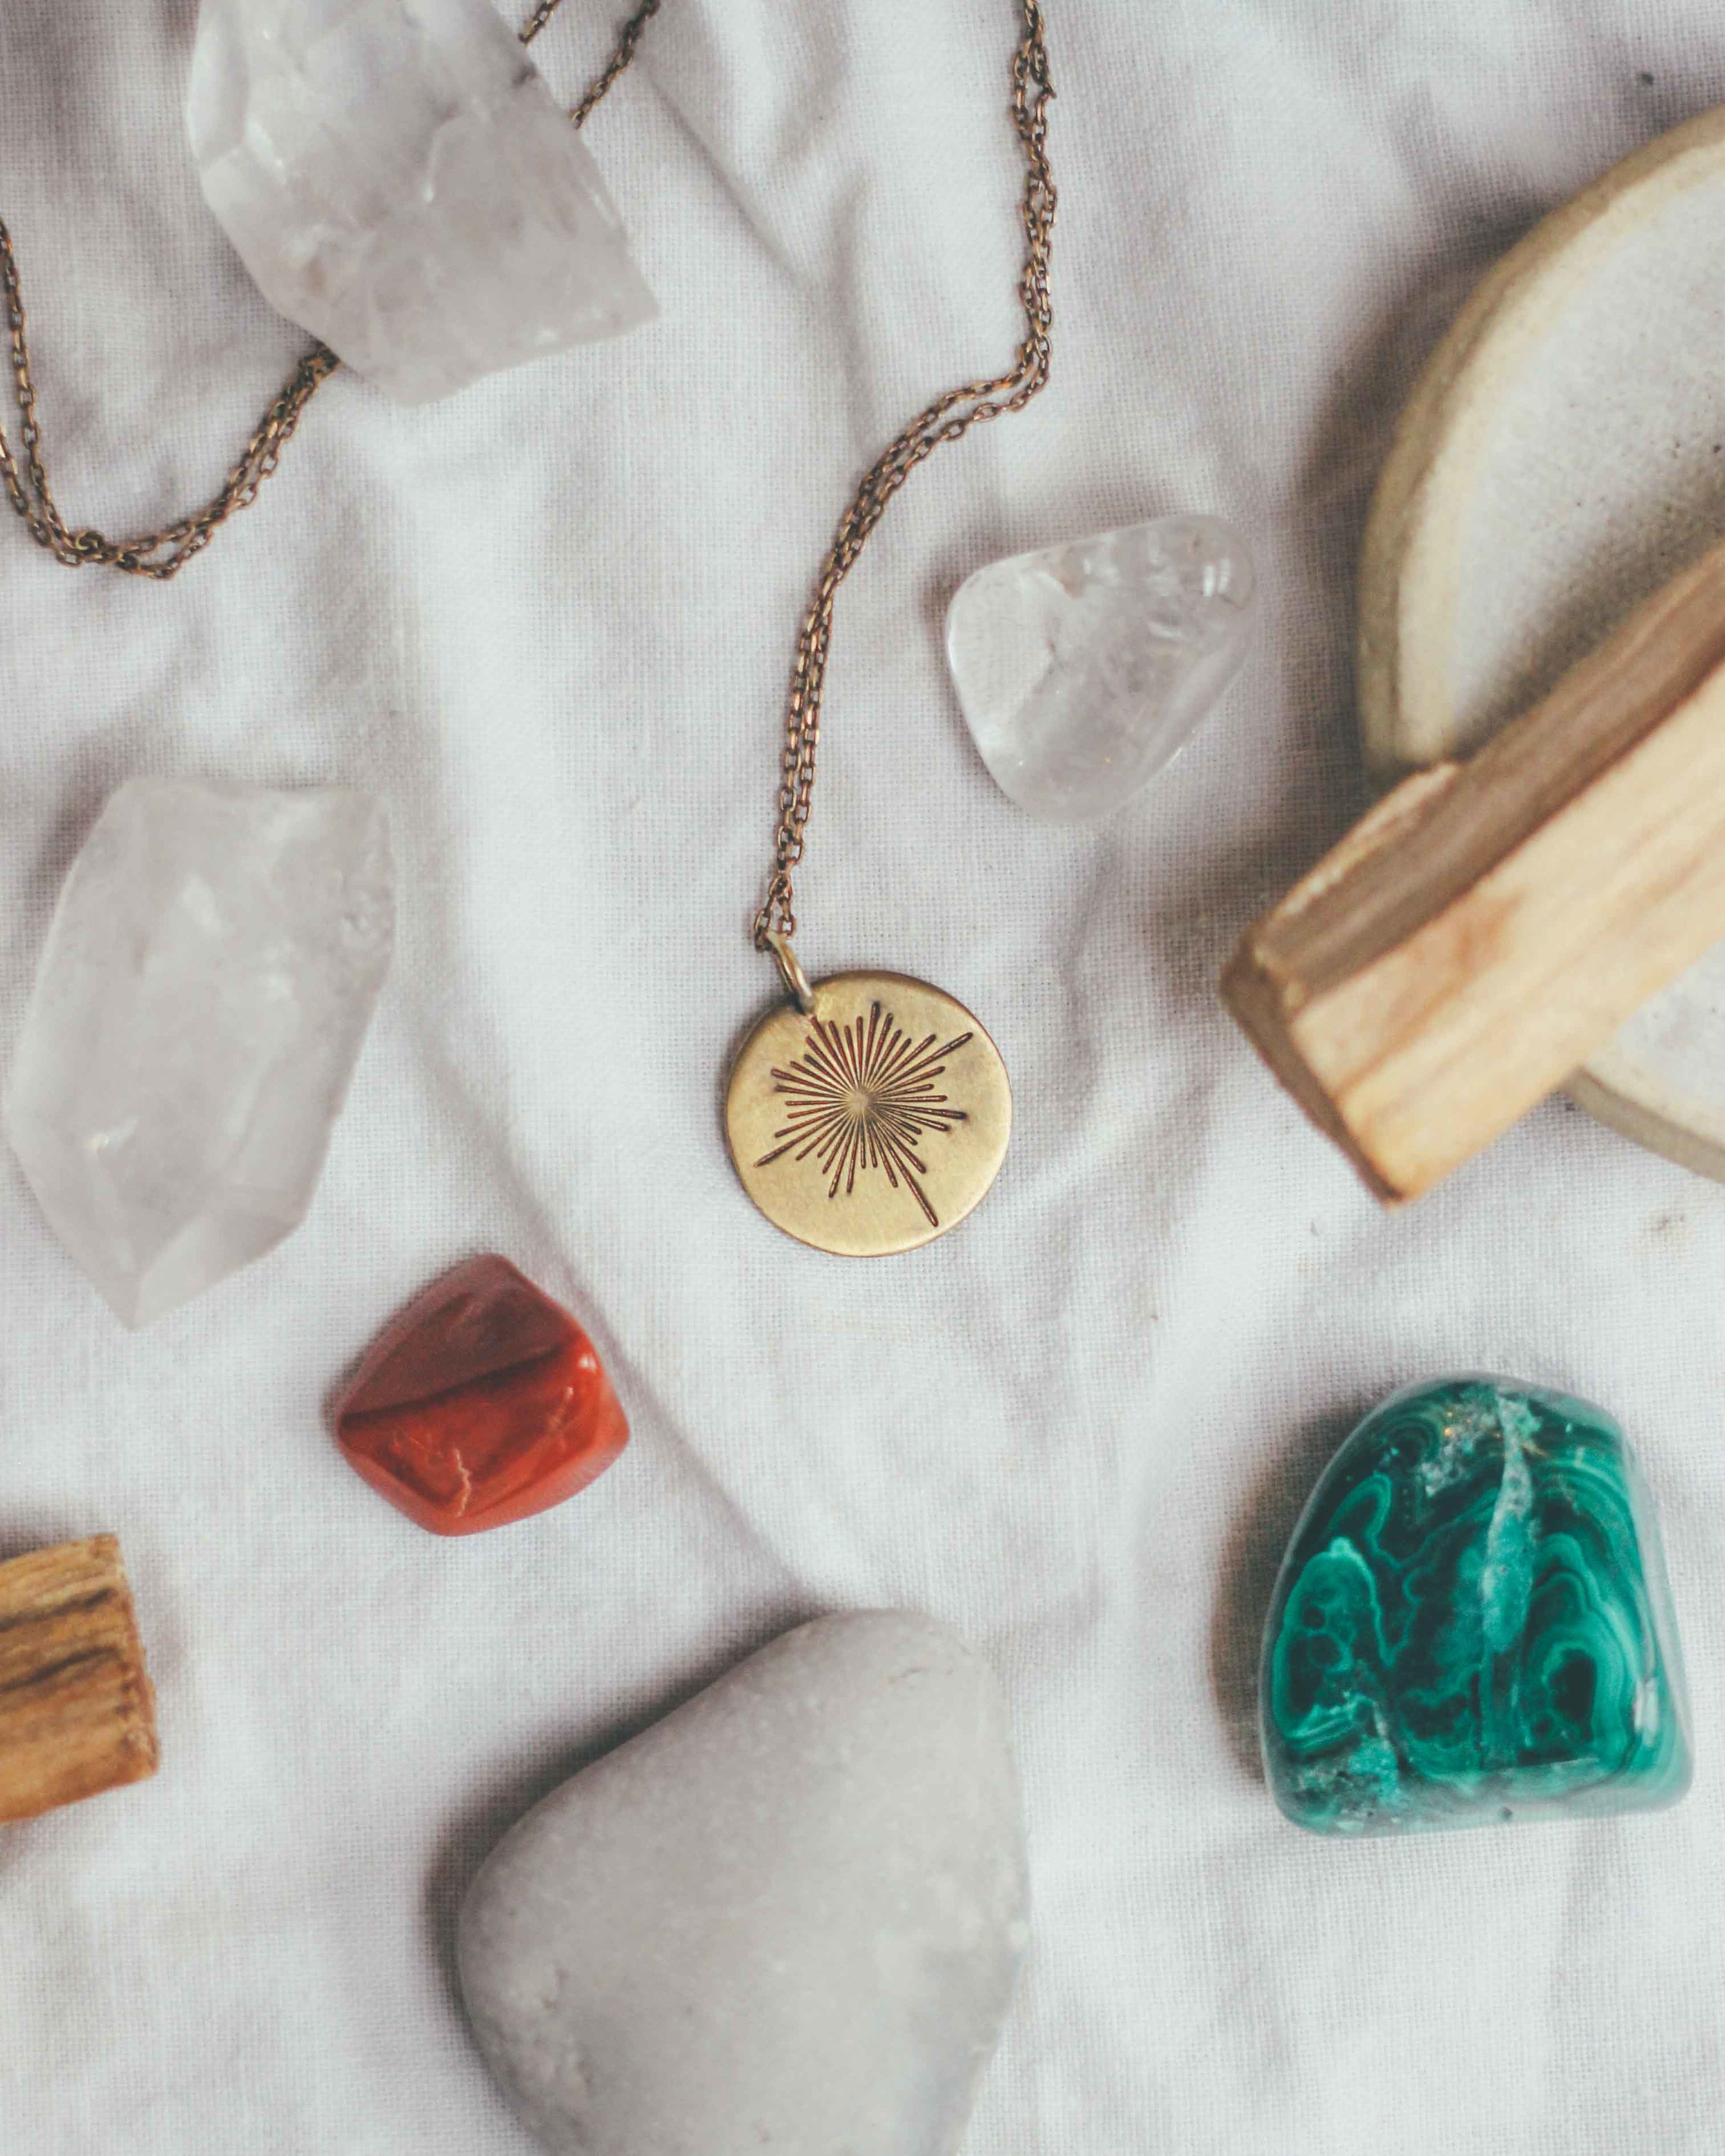 Fair Trade Jewelry - Ethical Jewelry - The Well Essentials